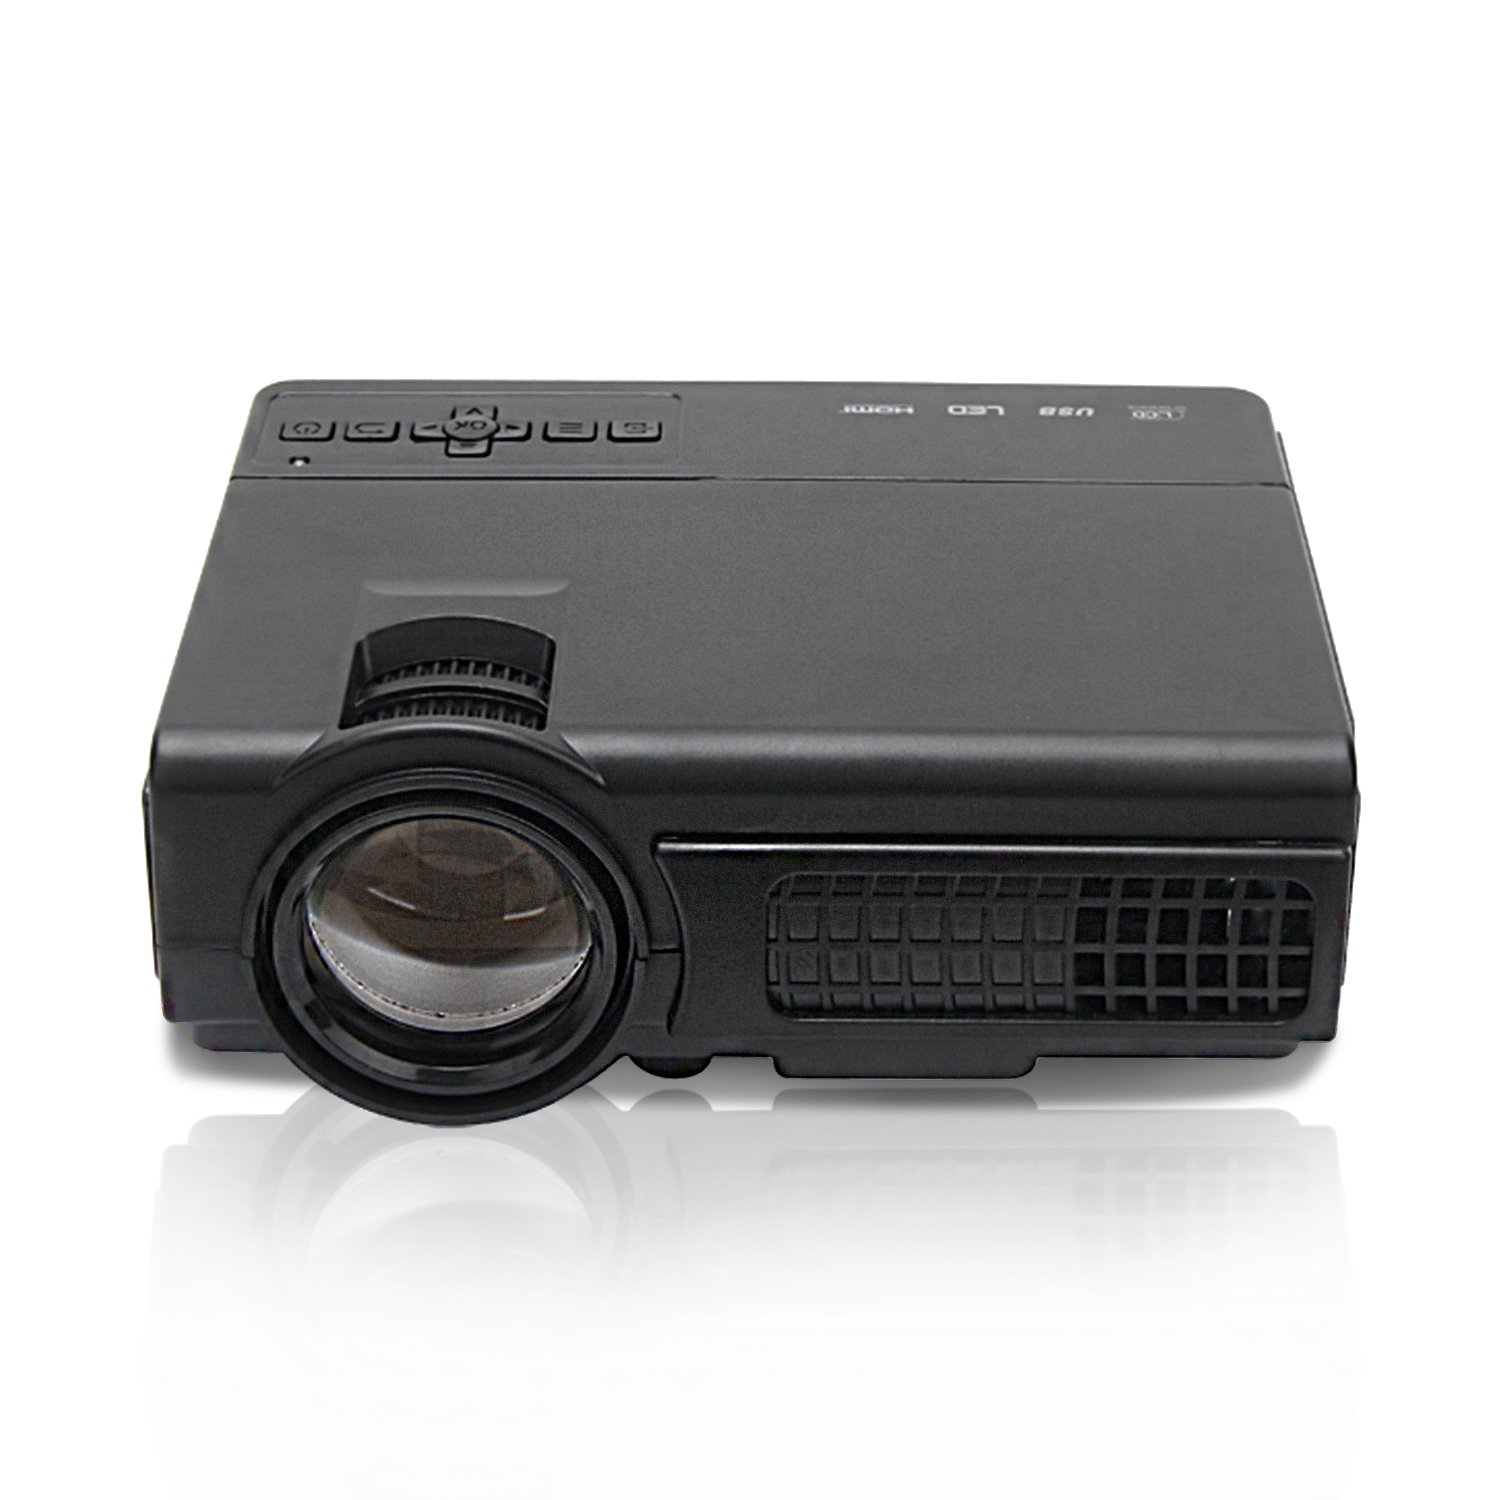 Mlison Video Projector, Home Theater Projector with Builtin Stereo Speakers